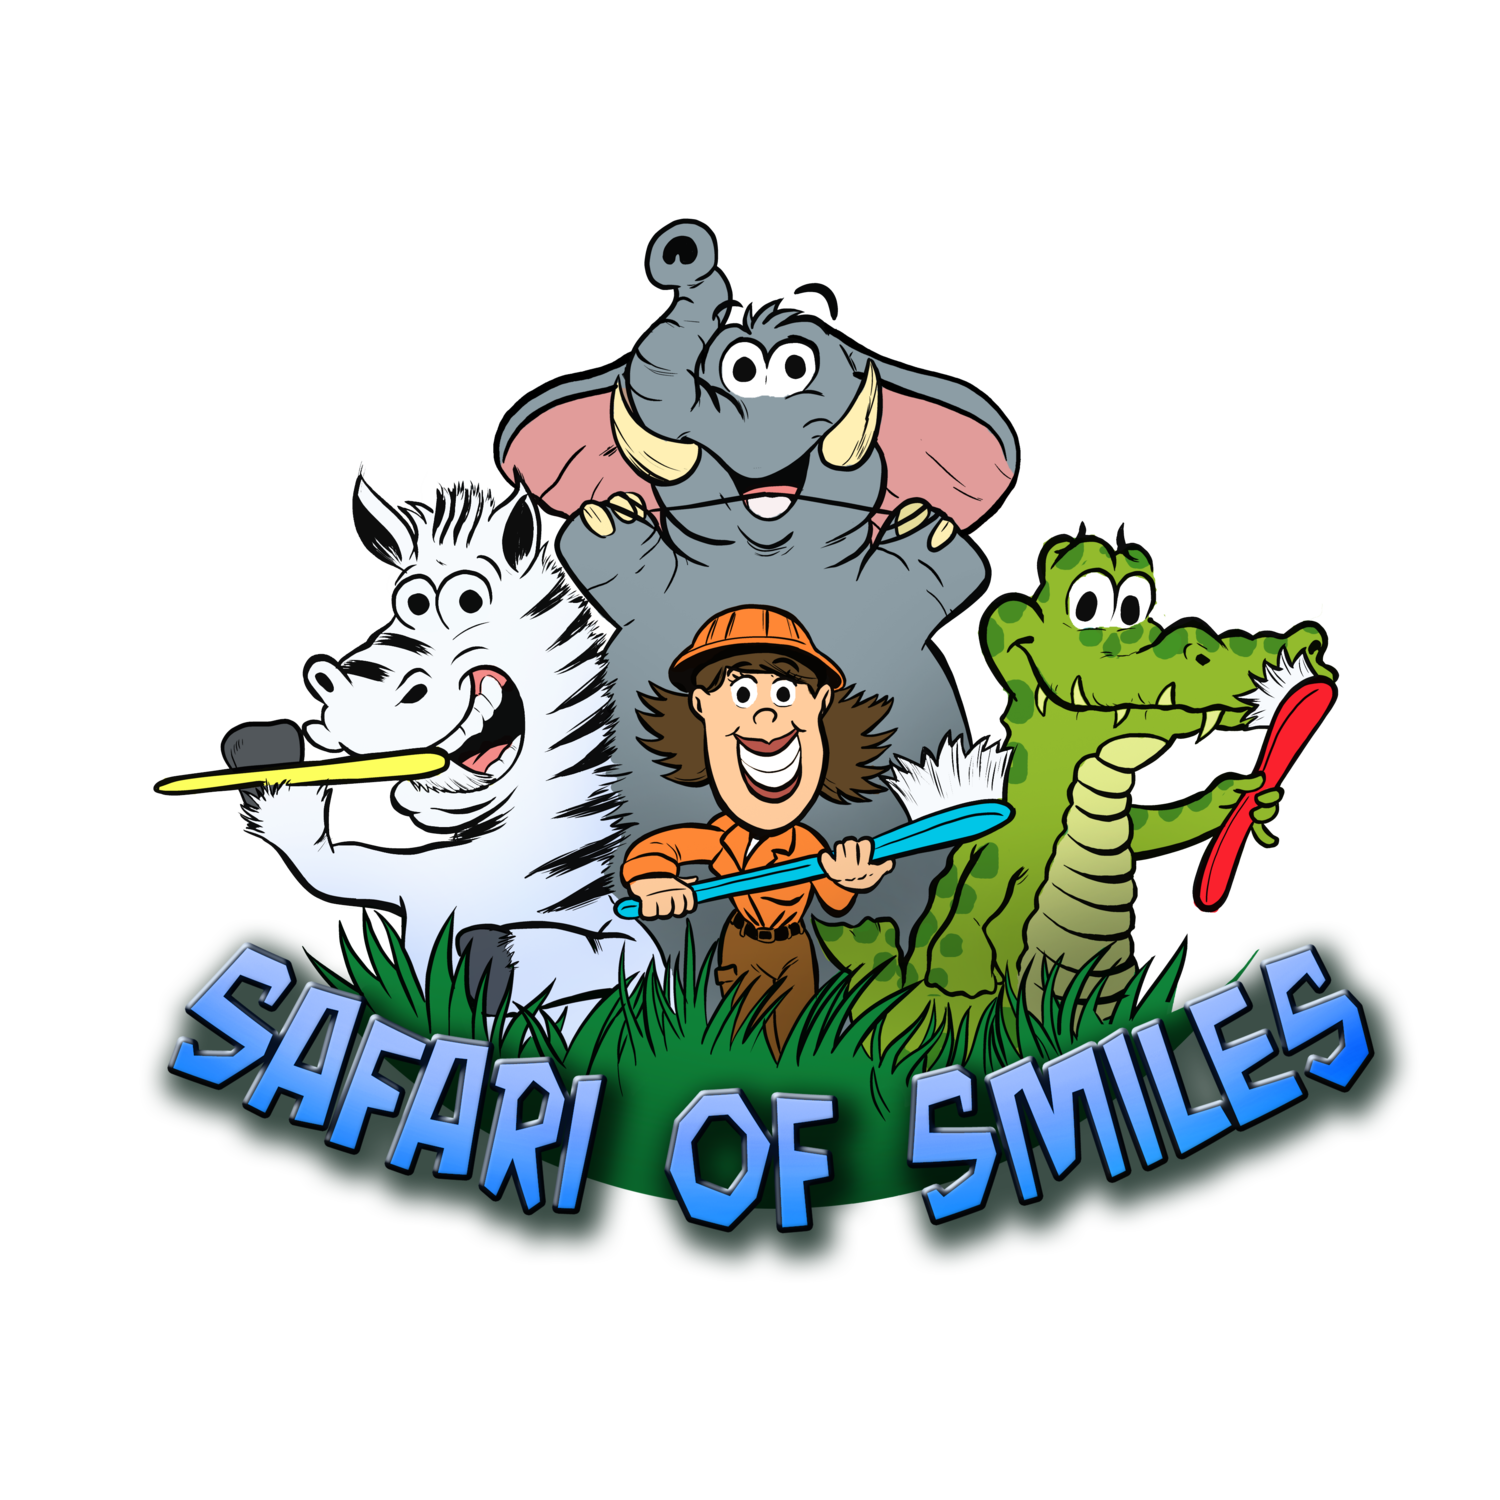 Safari of Smiles